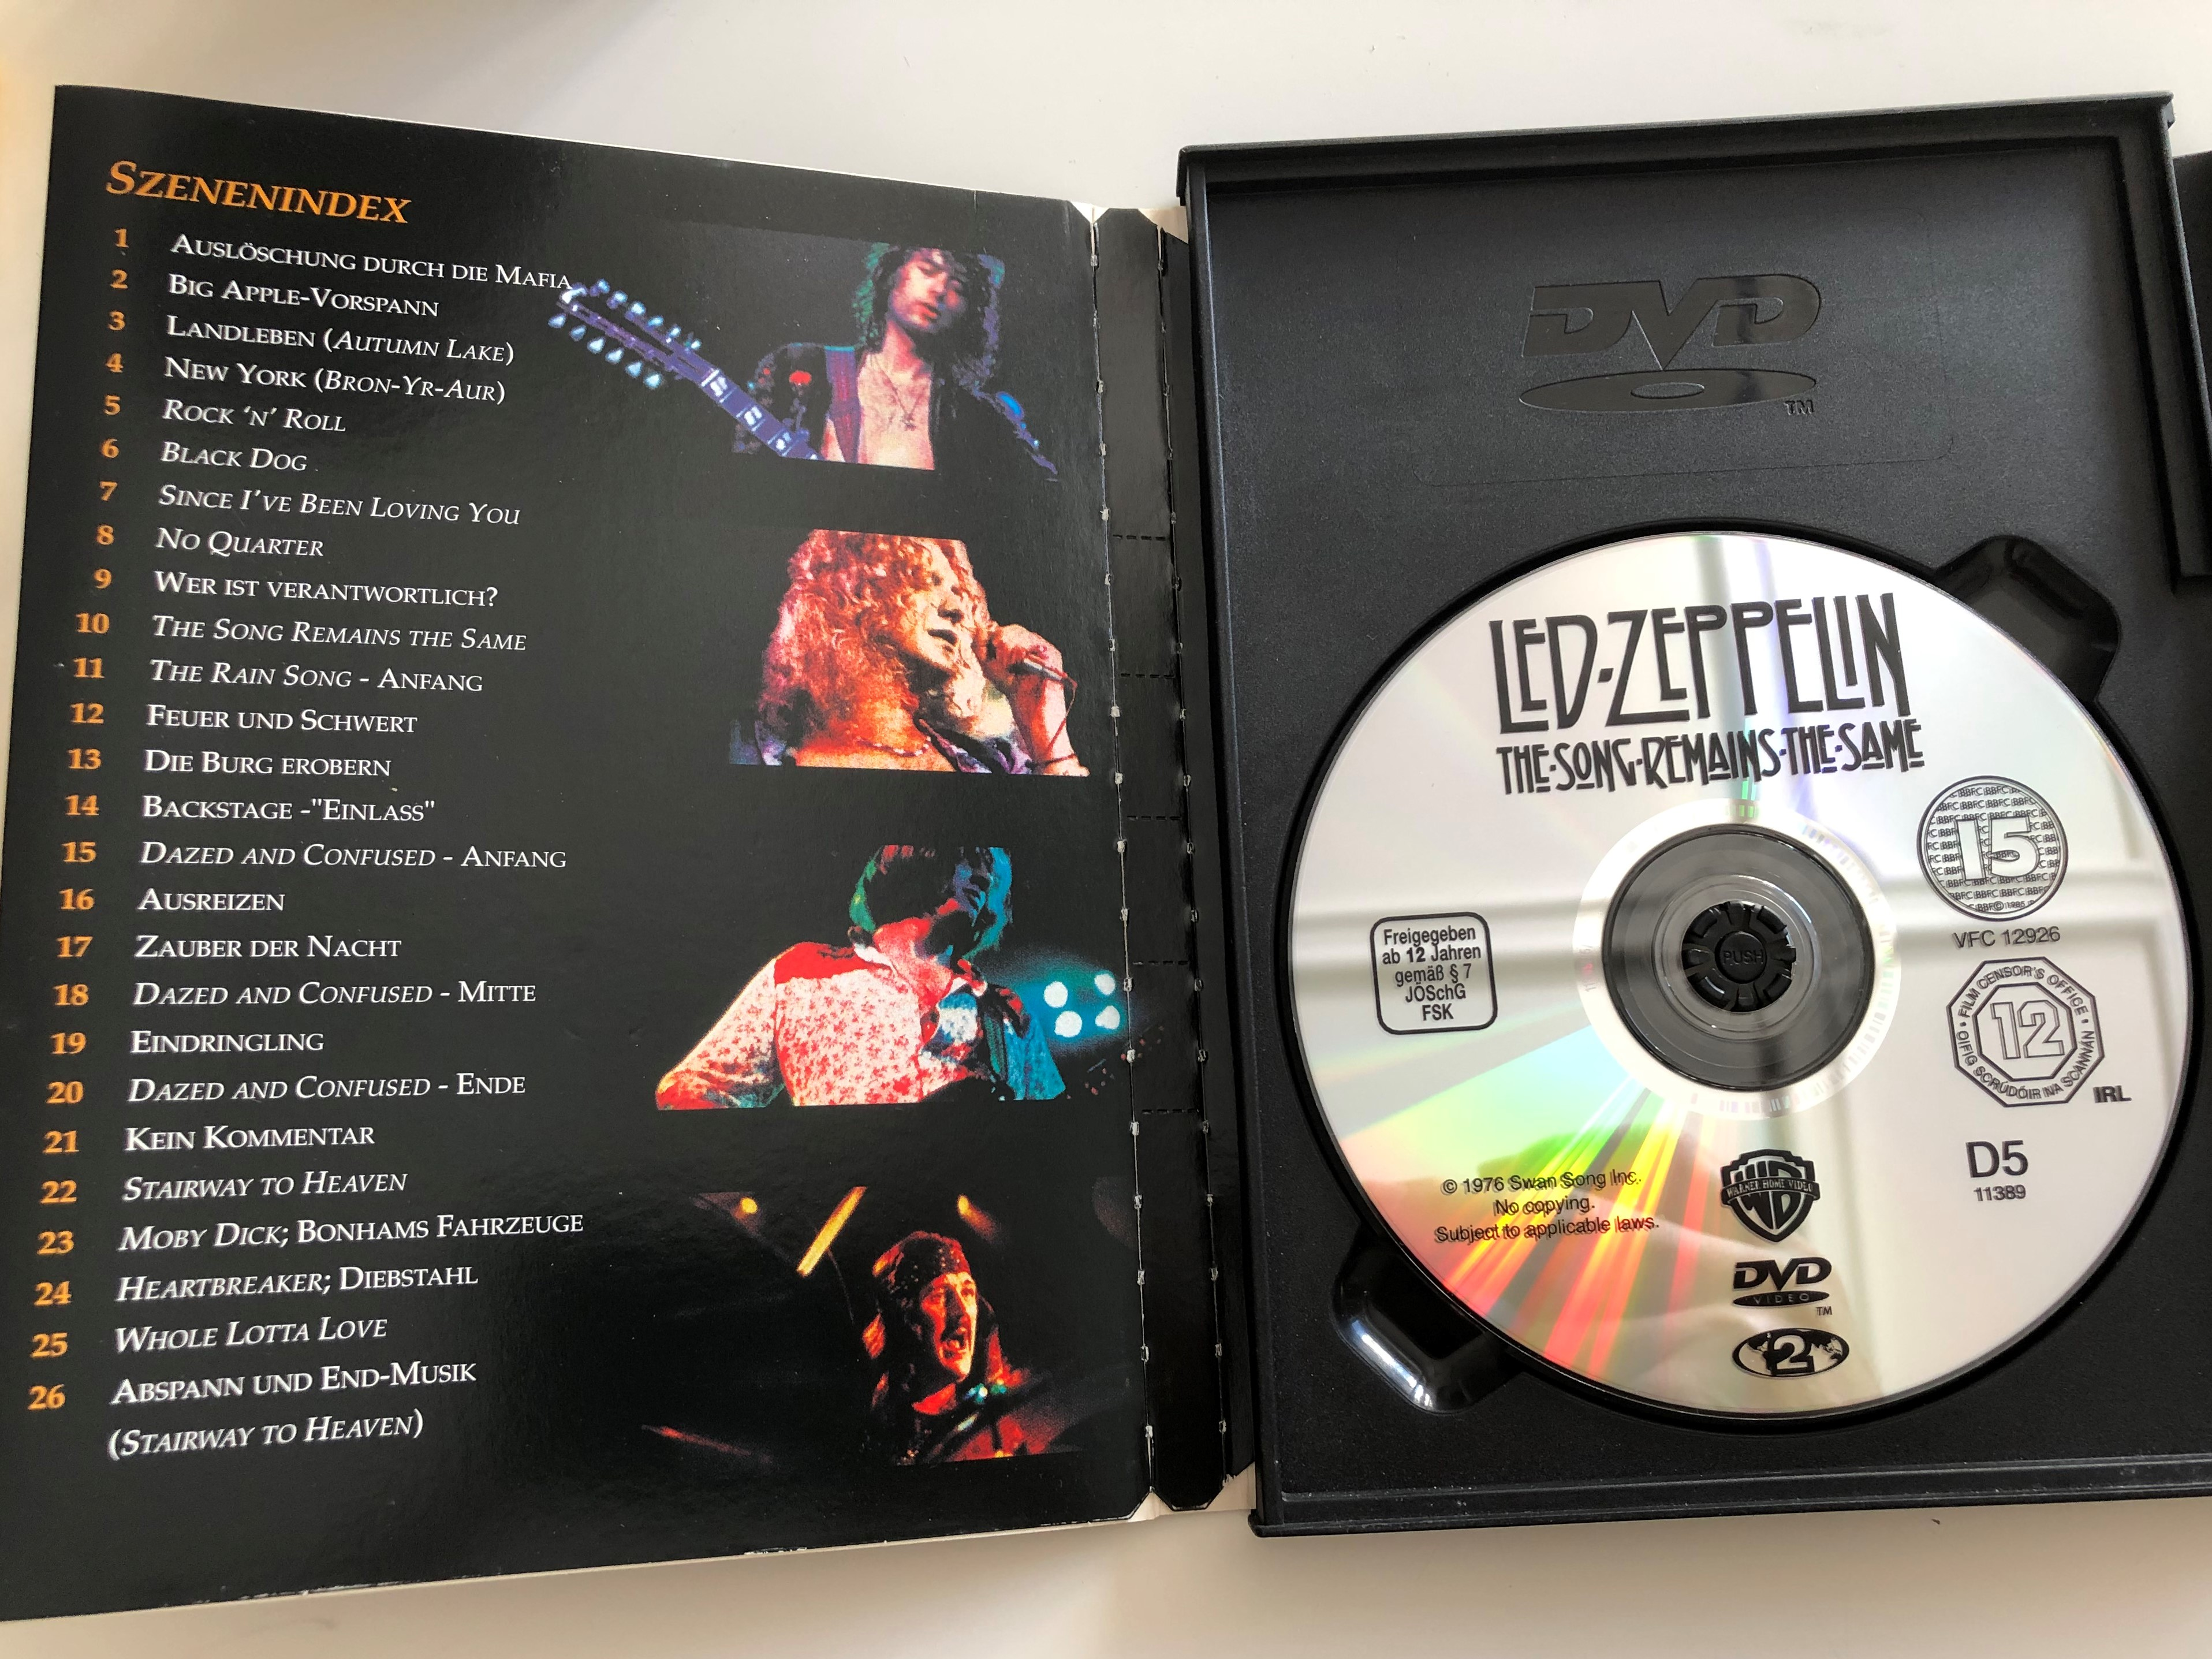 led-zeppelin-the-song-remains-the-same-dvd-1976-in-concert-and-beyond-3.jpg